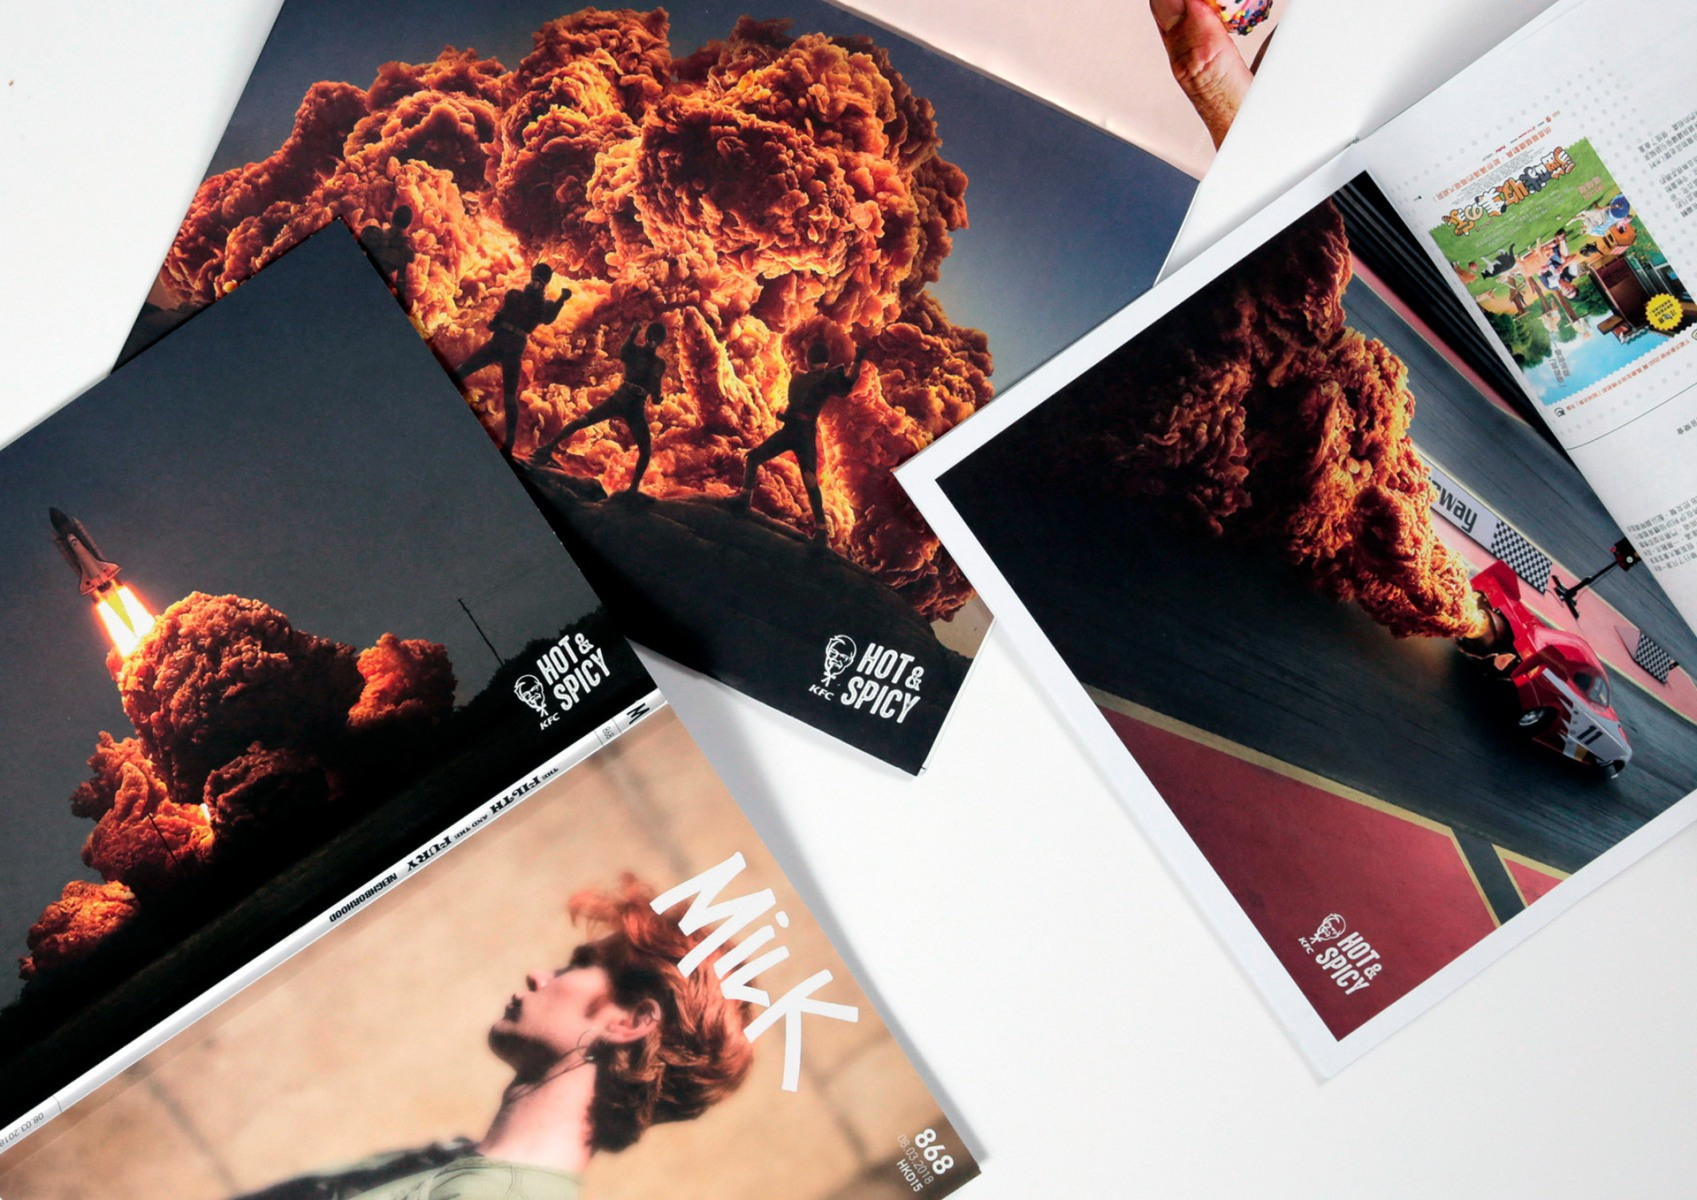 KFC-Hot-Spicy-Campaign-by-Ogilvy-Daily-design-inspiration-for-creatives-Inspiration-Grid-24